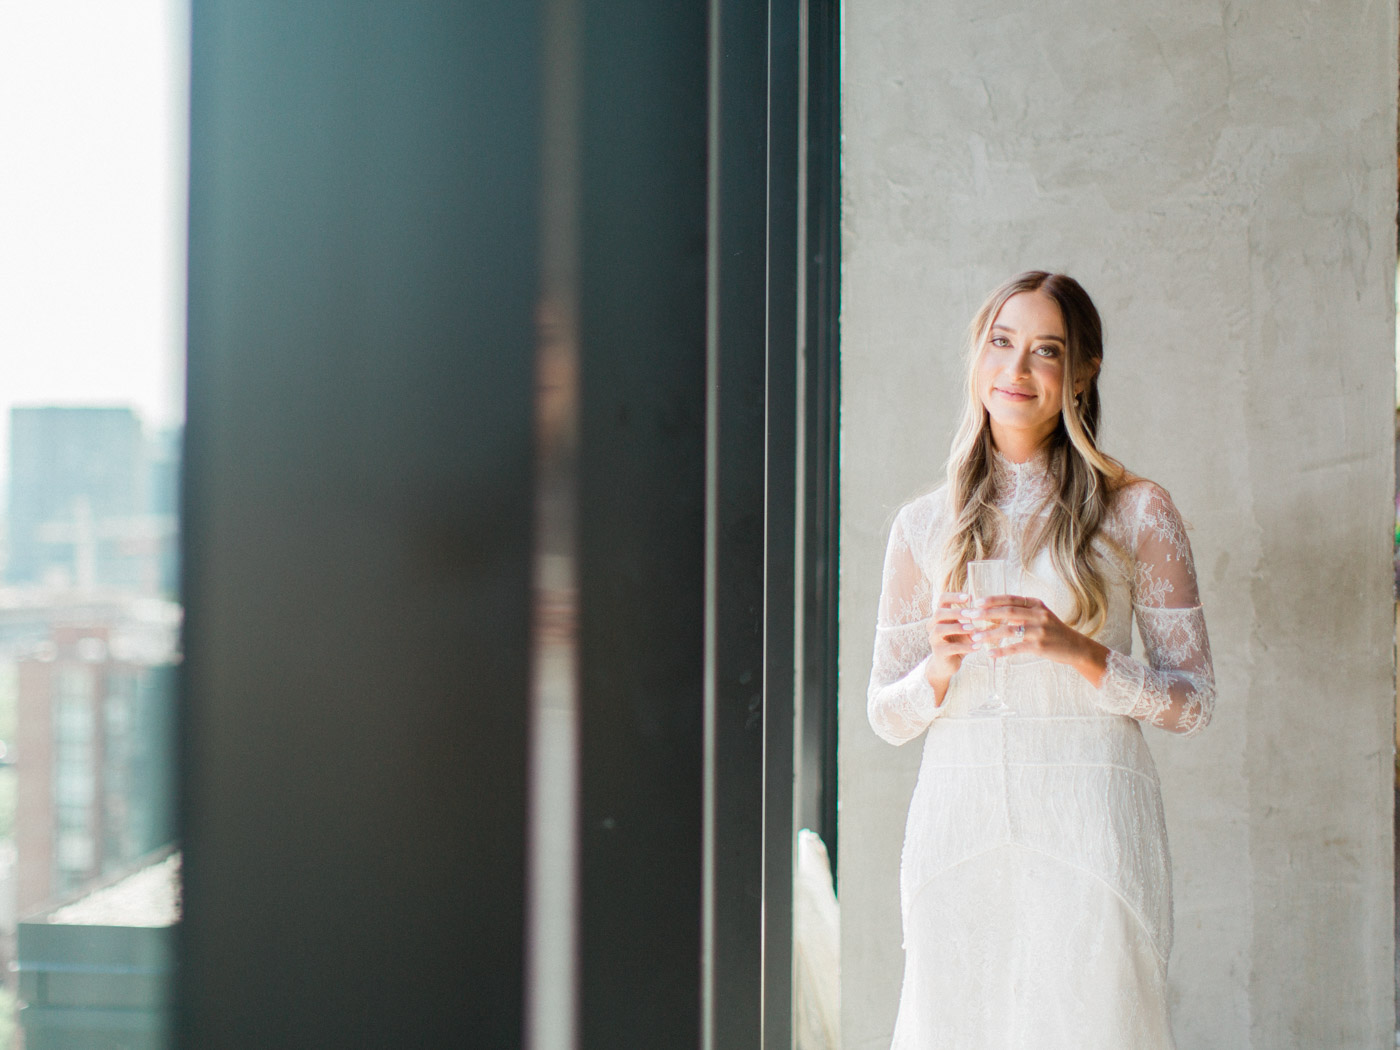 -	Candid, natural first look between bride and groom at restaurant wedding Chez Lavelle.  Captured by Toronto wedding photographer Corynn Fowler Photography.